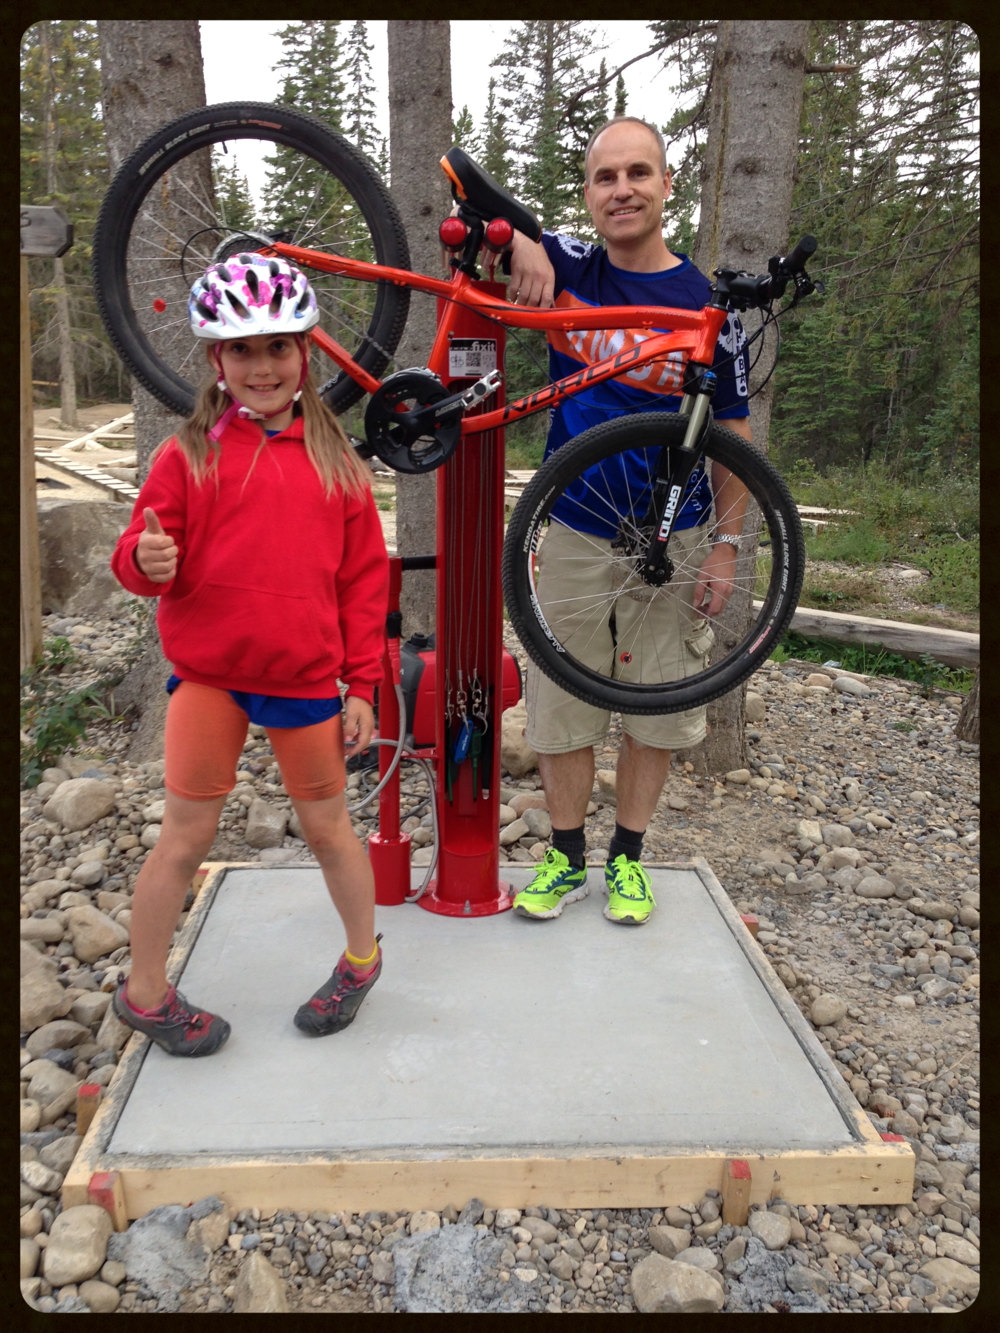 A thumbs up for this great addition to the Hinton Bike Park!